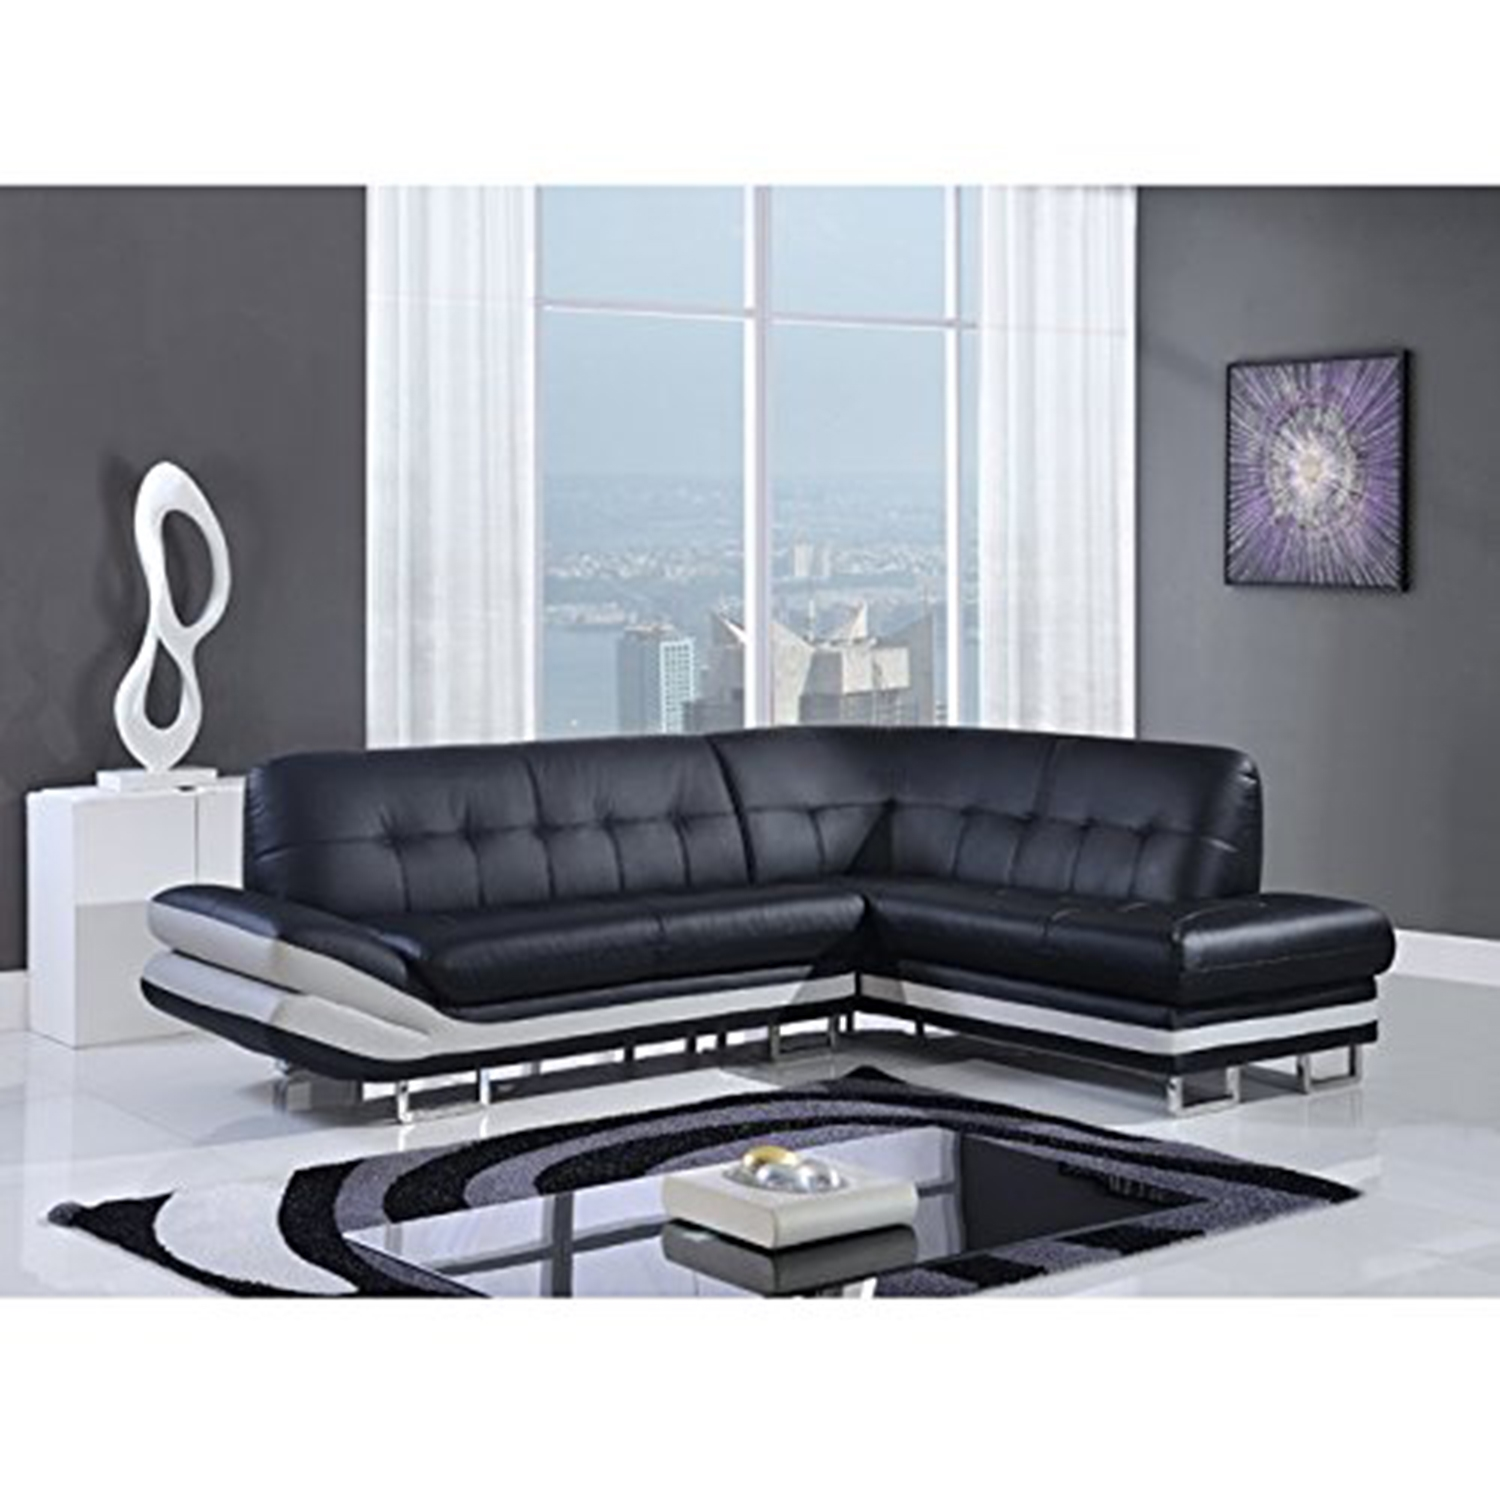 Elias 2-Piece Leather Sectional Sofa in Natalie Black/Natalie Light Gray